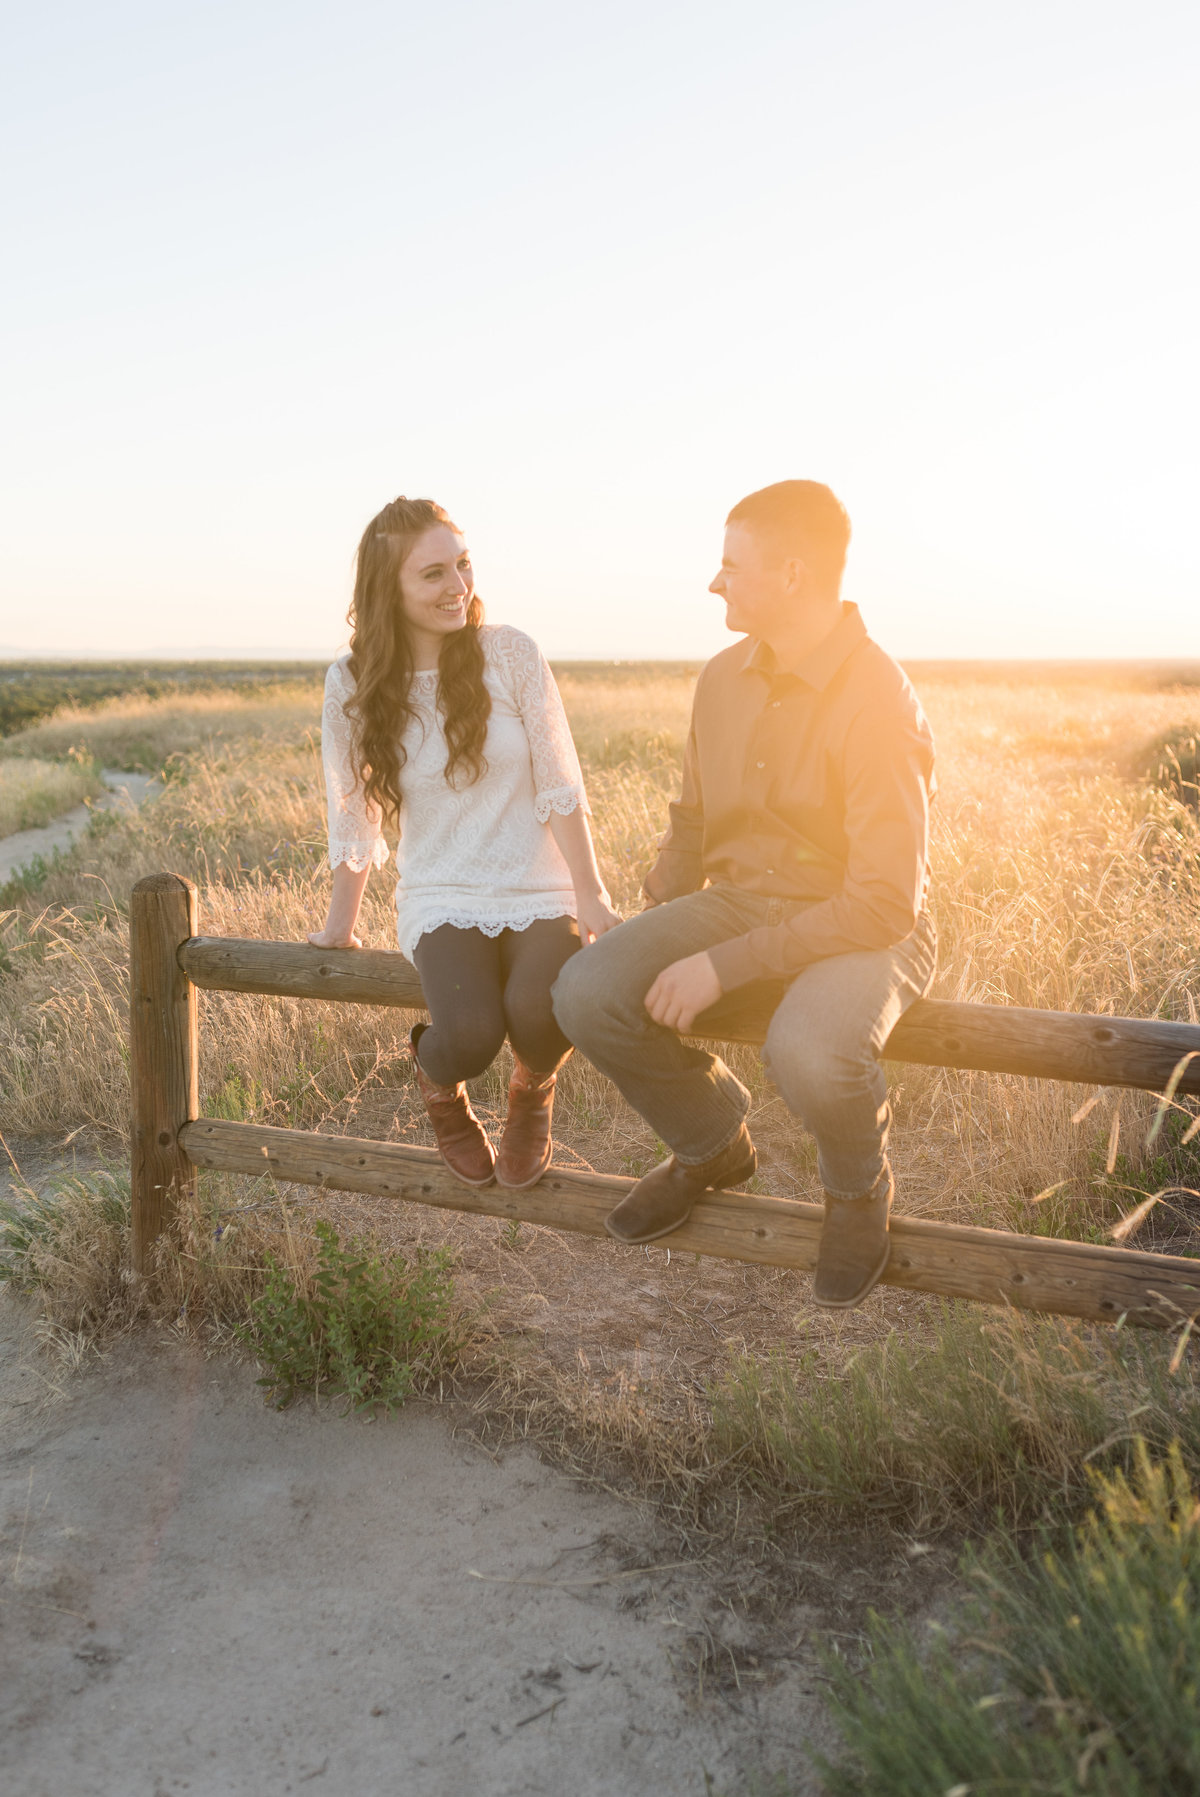 Spring Boise Foothills Engagement Shoot11